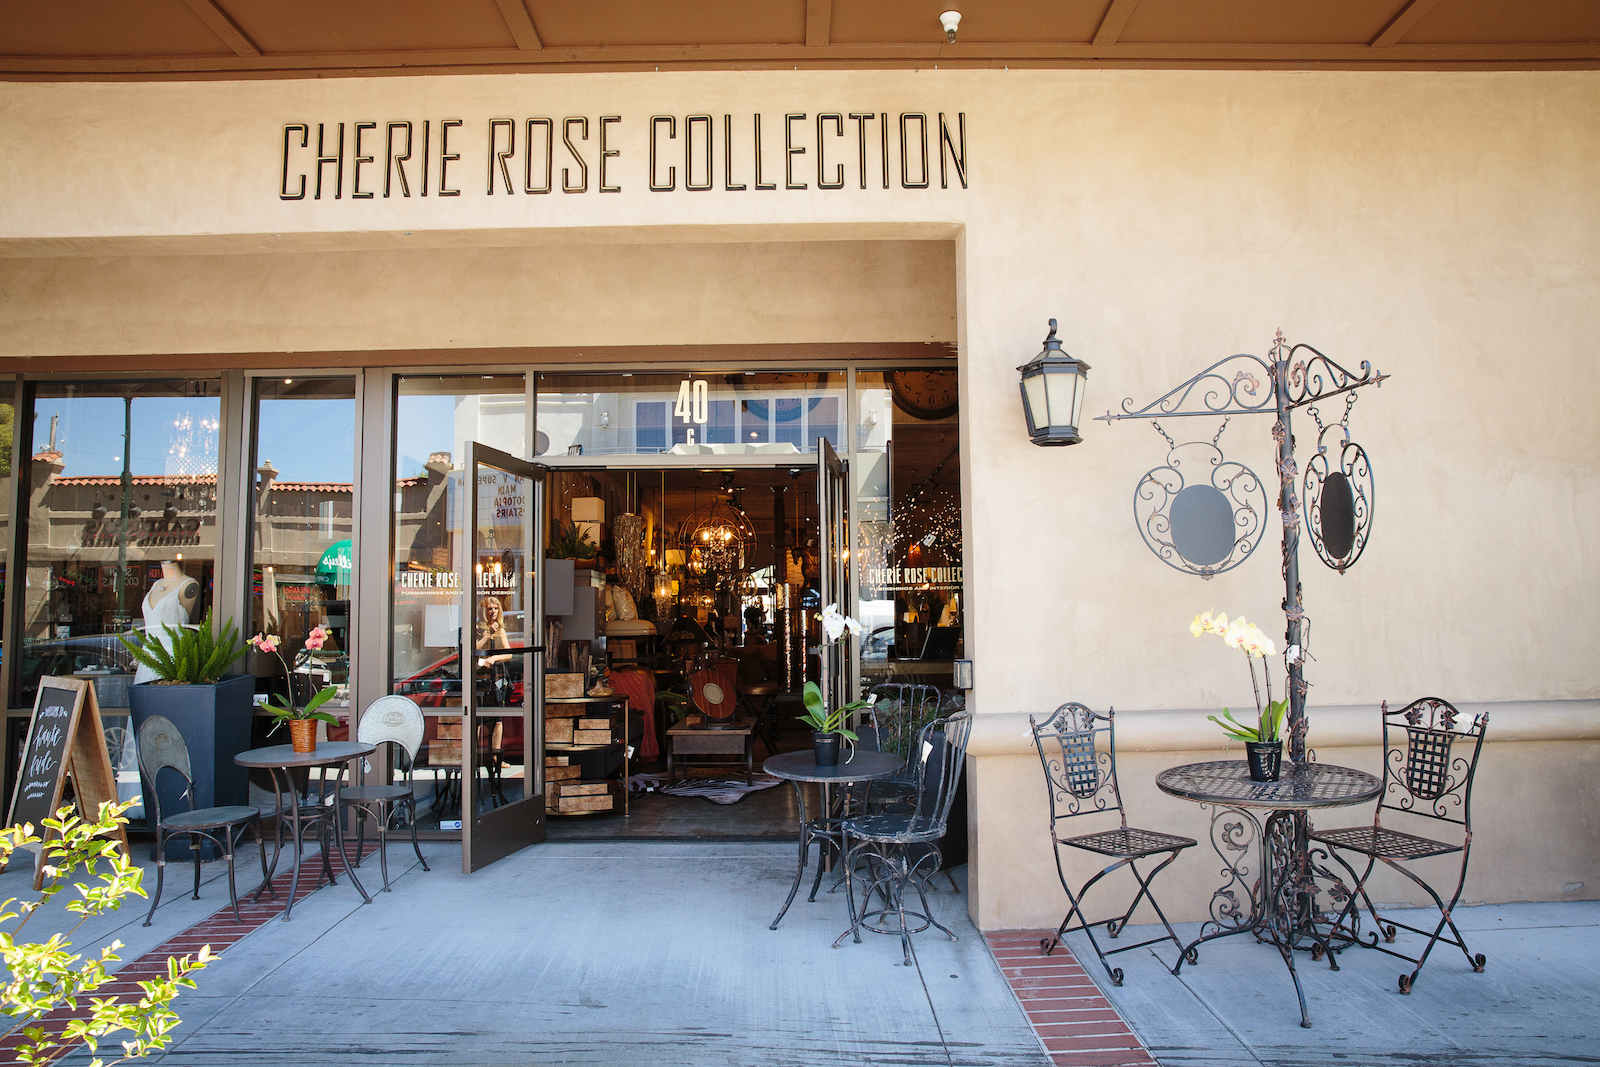 Front facade of the Cherie Rose Collection